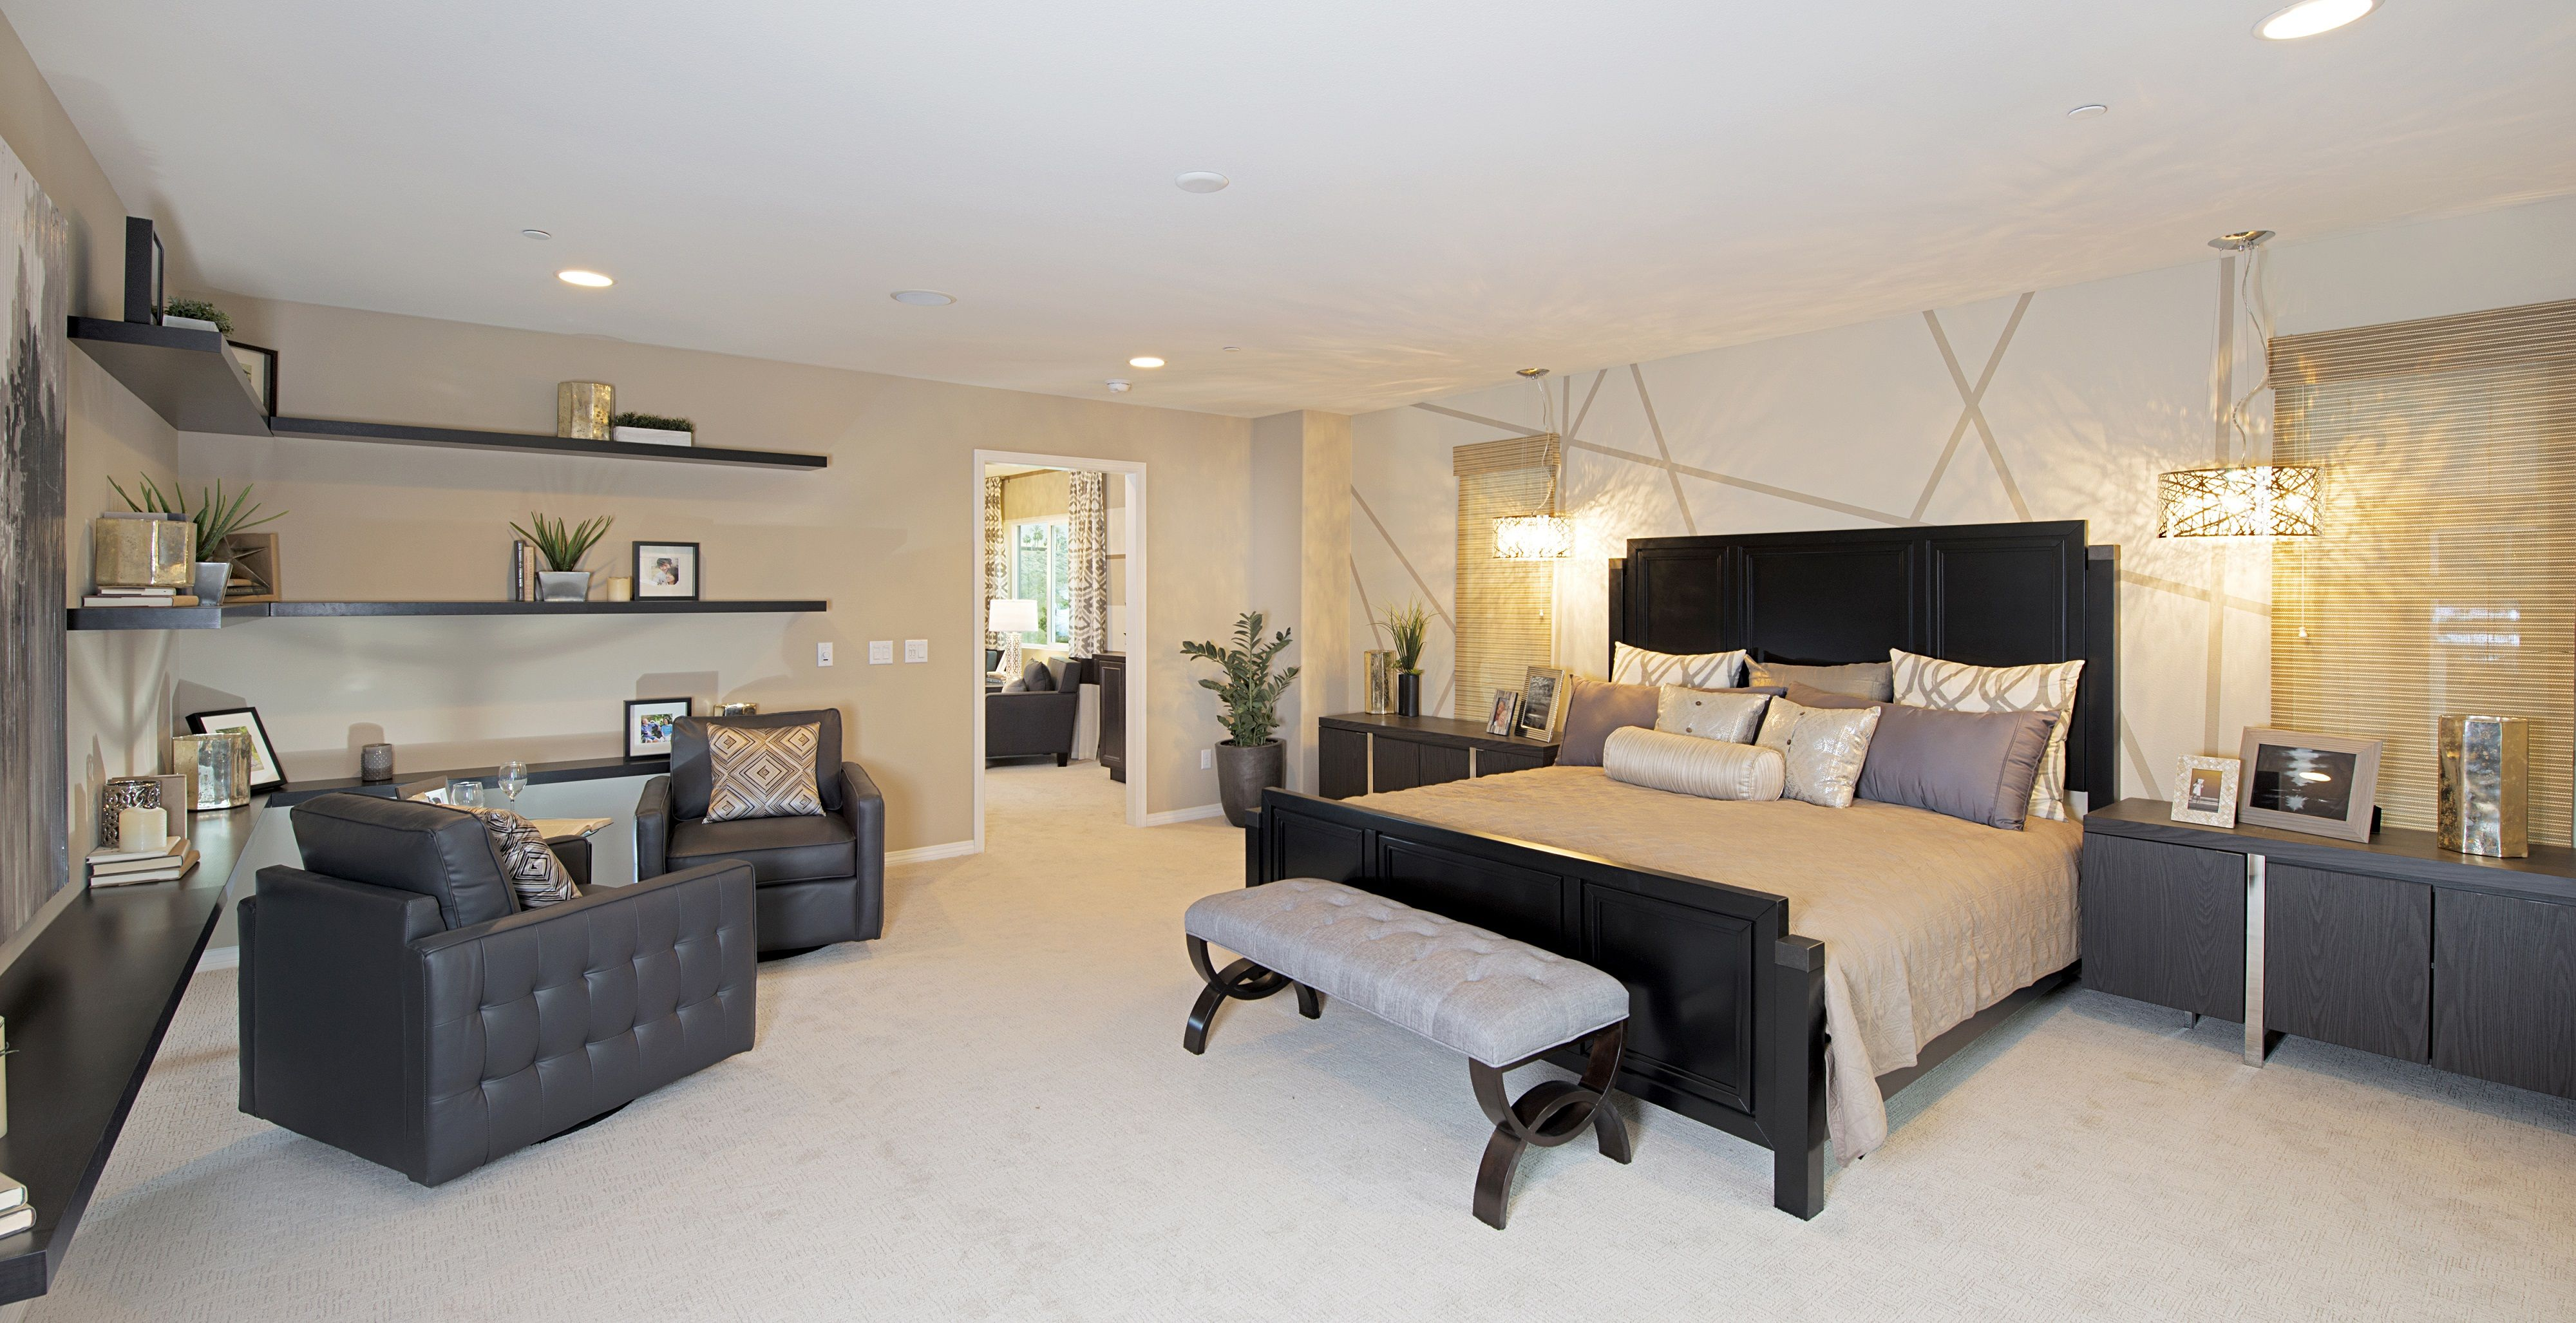 magnolia heights model home upland ca